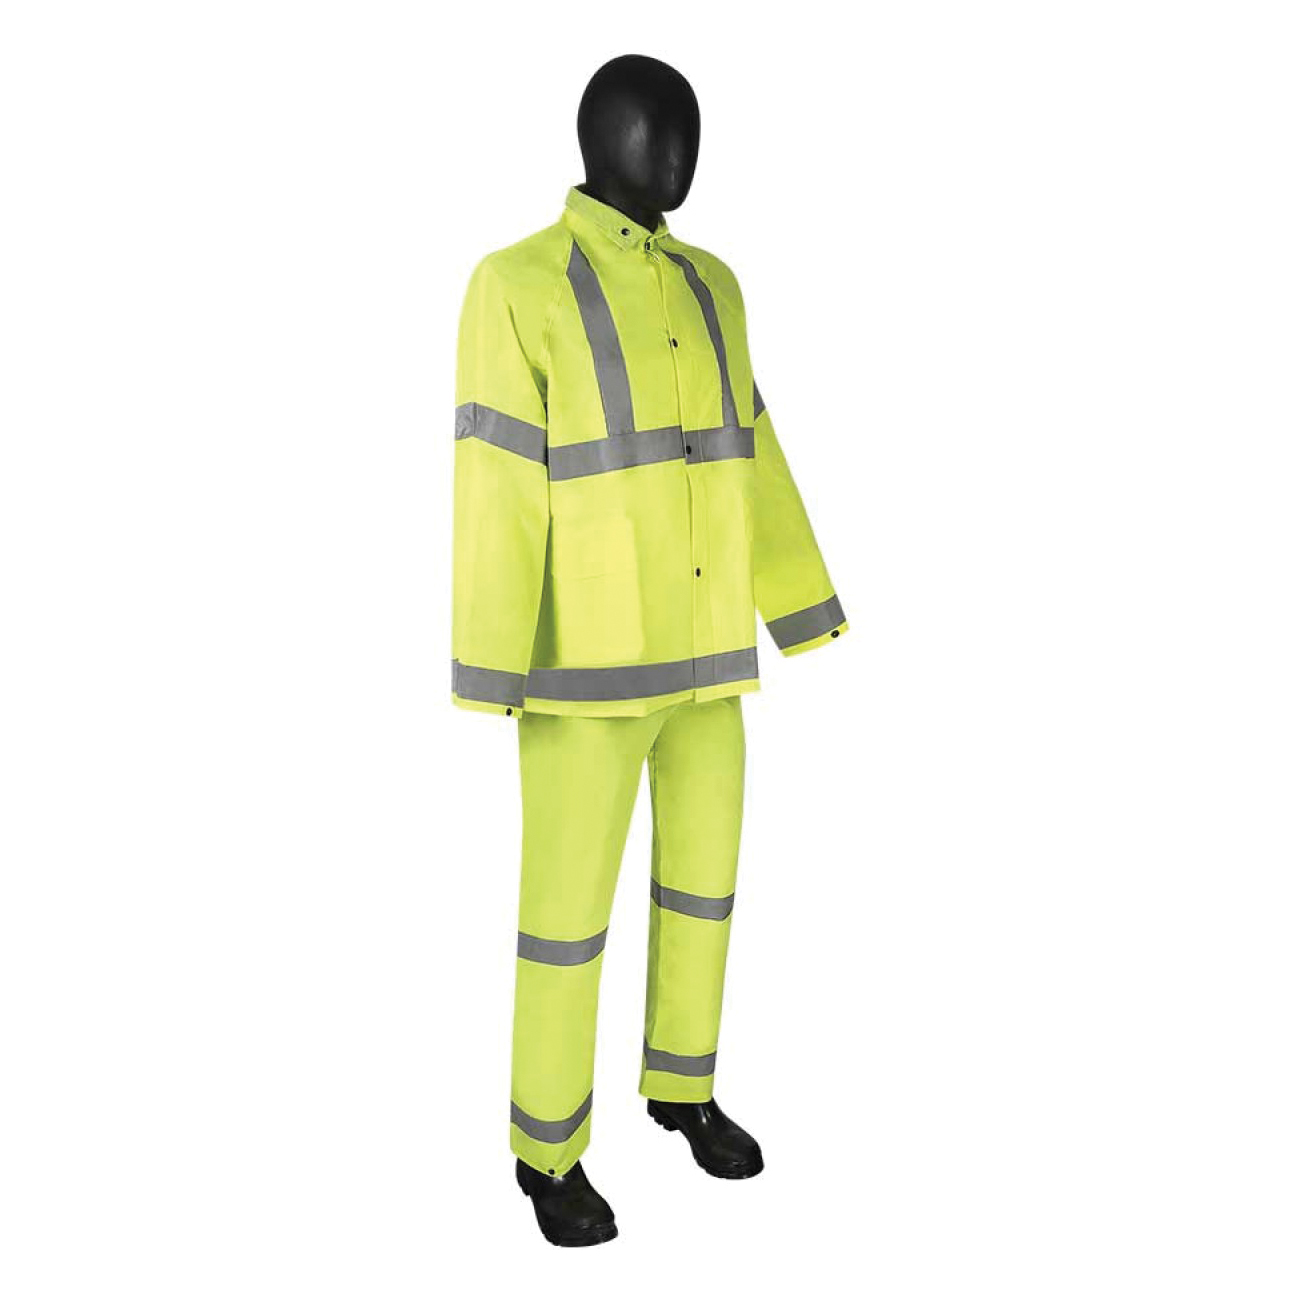 LIBERTY GLOVE & SAFETY 1260HIVIZ